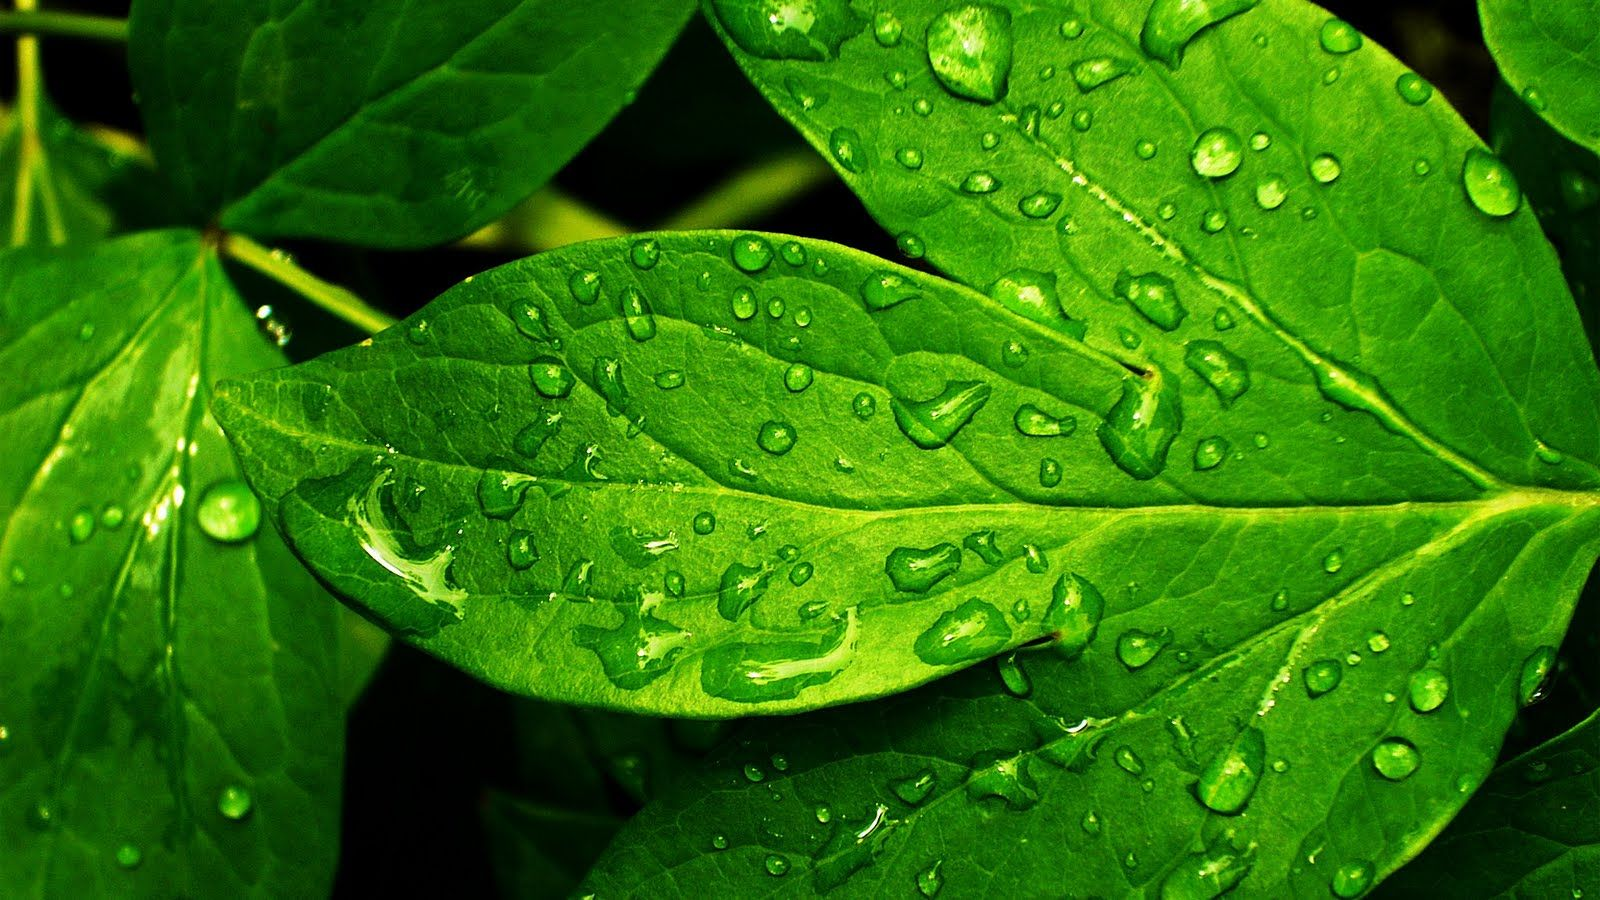 Green Wallpaper Colors Wallpaper 34511128 Fanpop Green Nature Wallpaper Green Leaf Wallpaper Leaf Wallpaper